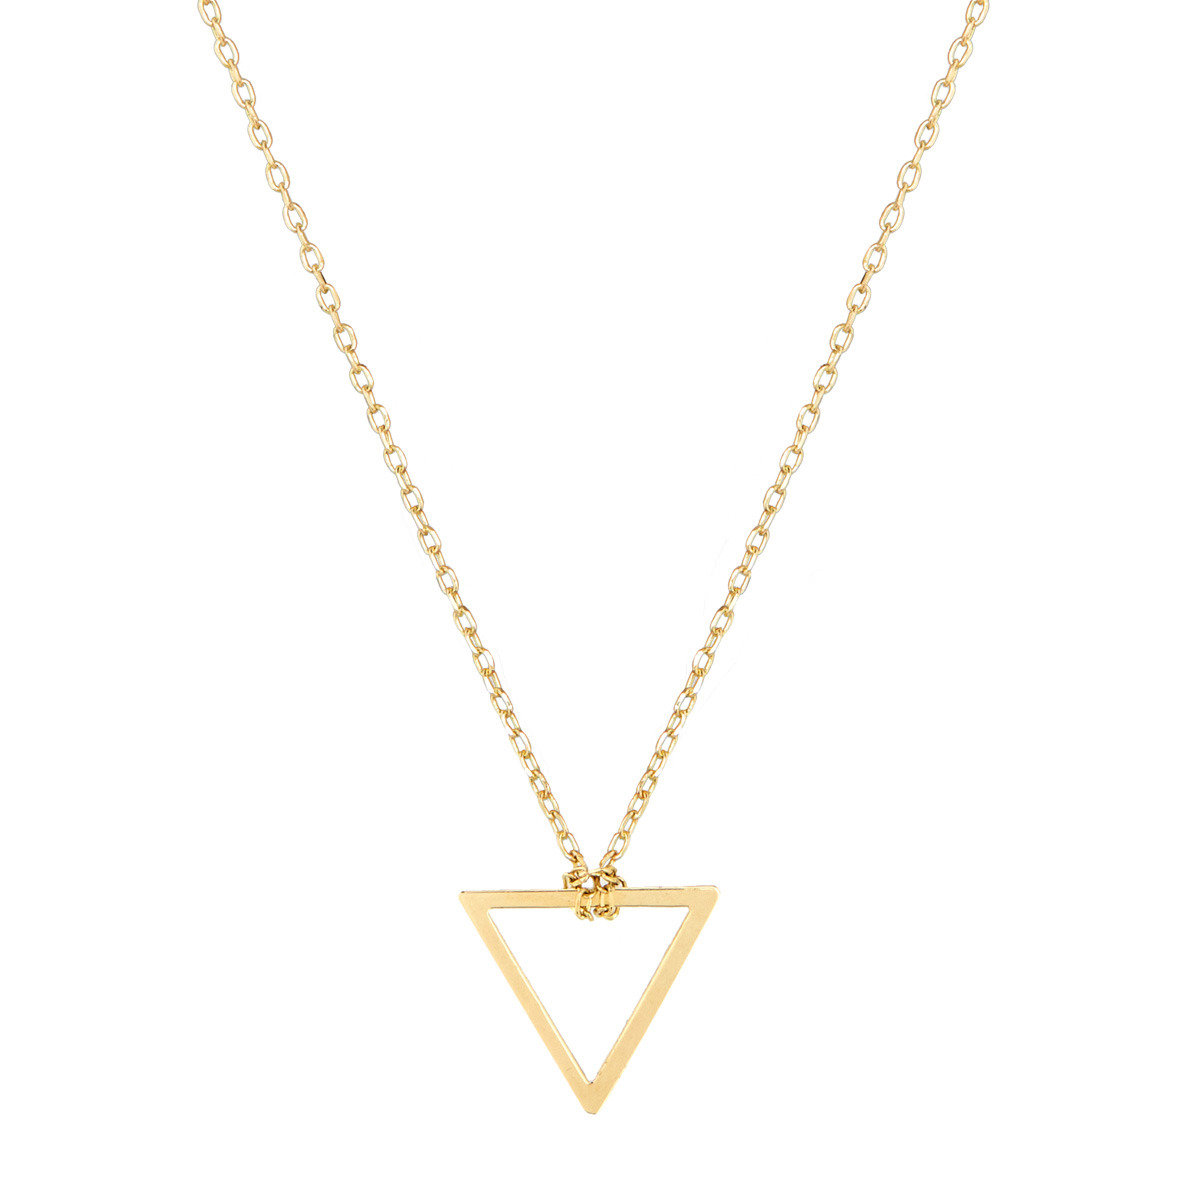 Triangle-shaped design necklace_FP1261